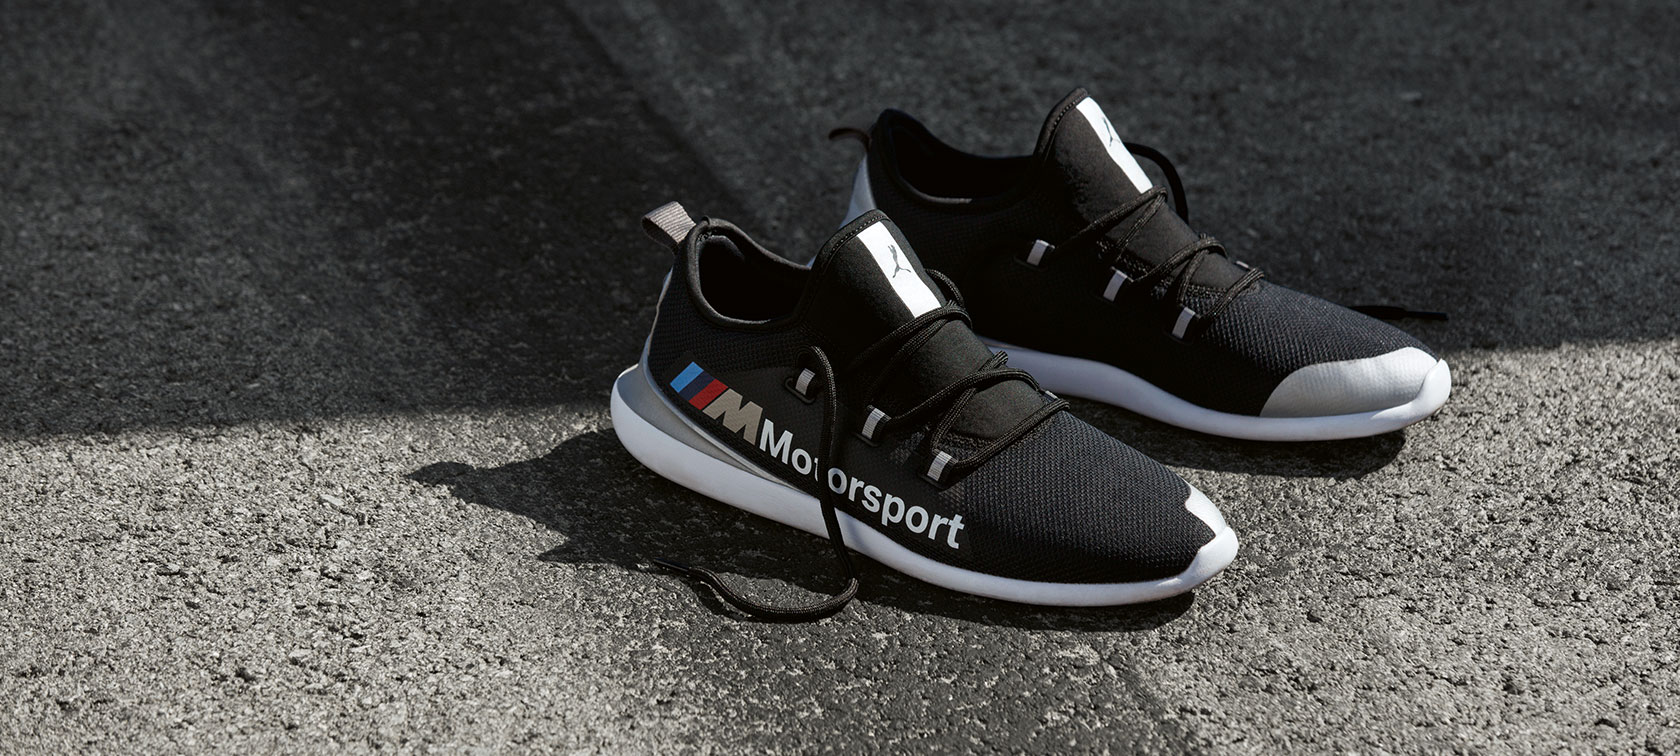 A pair of BMW M Motorsport PUMA EVO CAT Shoes from the BMW M Motorsport Collection is shown standing on a tarmac surface.